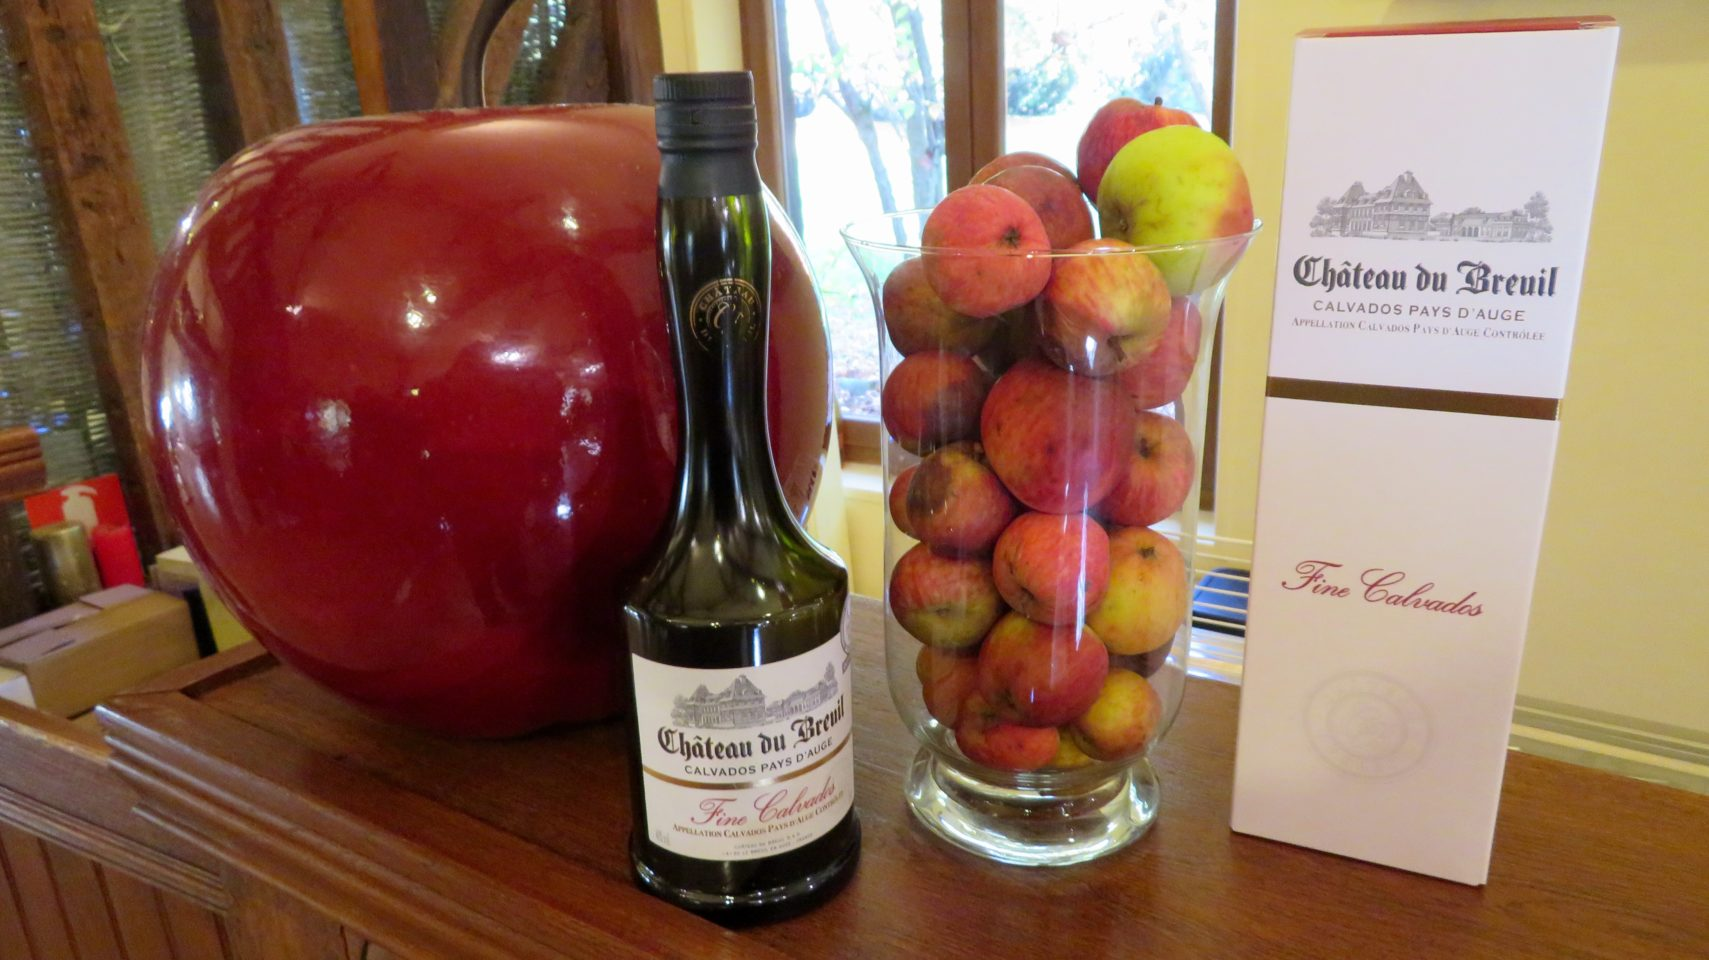 Calvados apple brandy from Chateau du Breuil in Normandie, France (Paris and Normandie AMAWaterways Cruise)